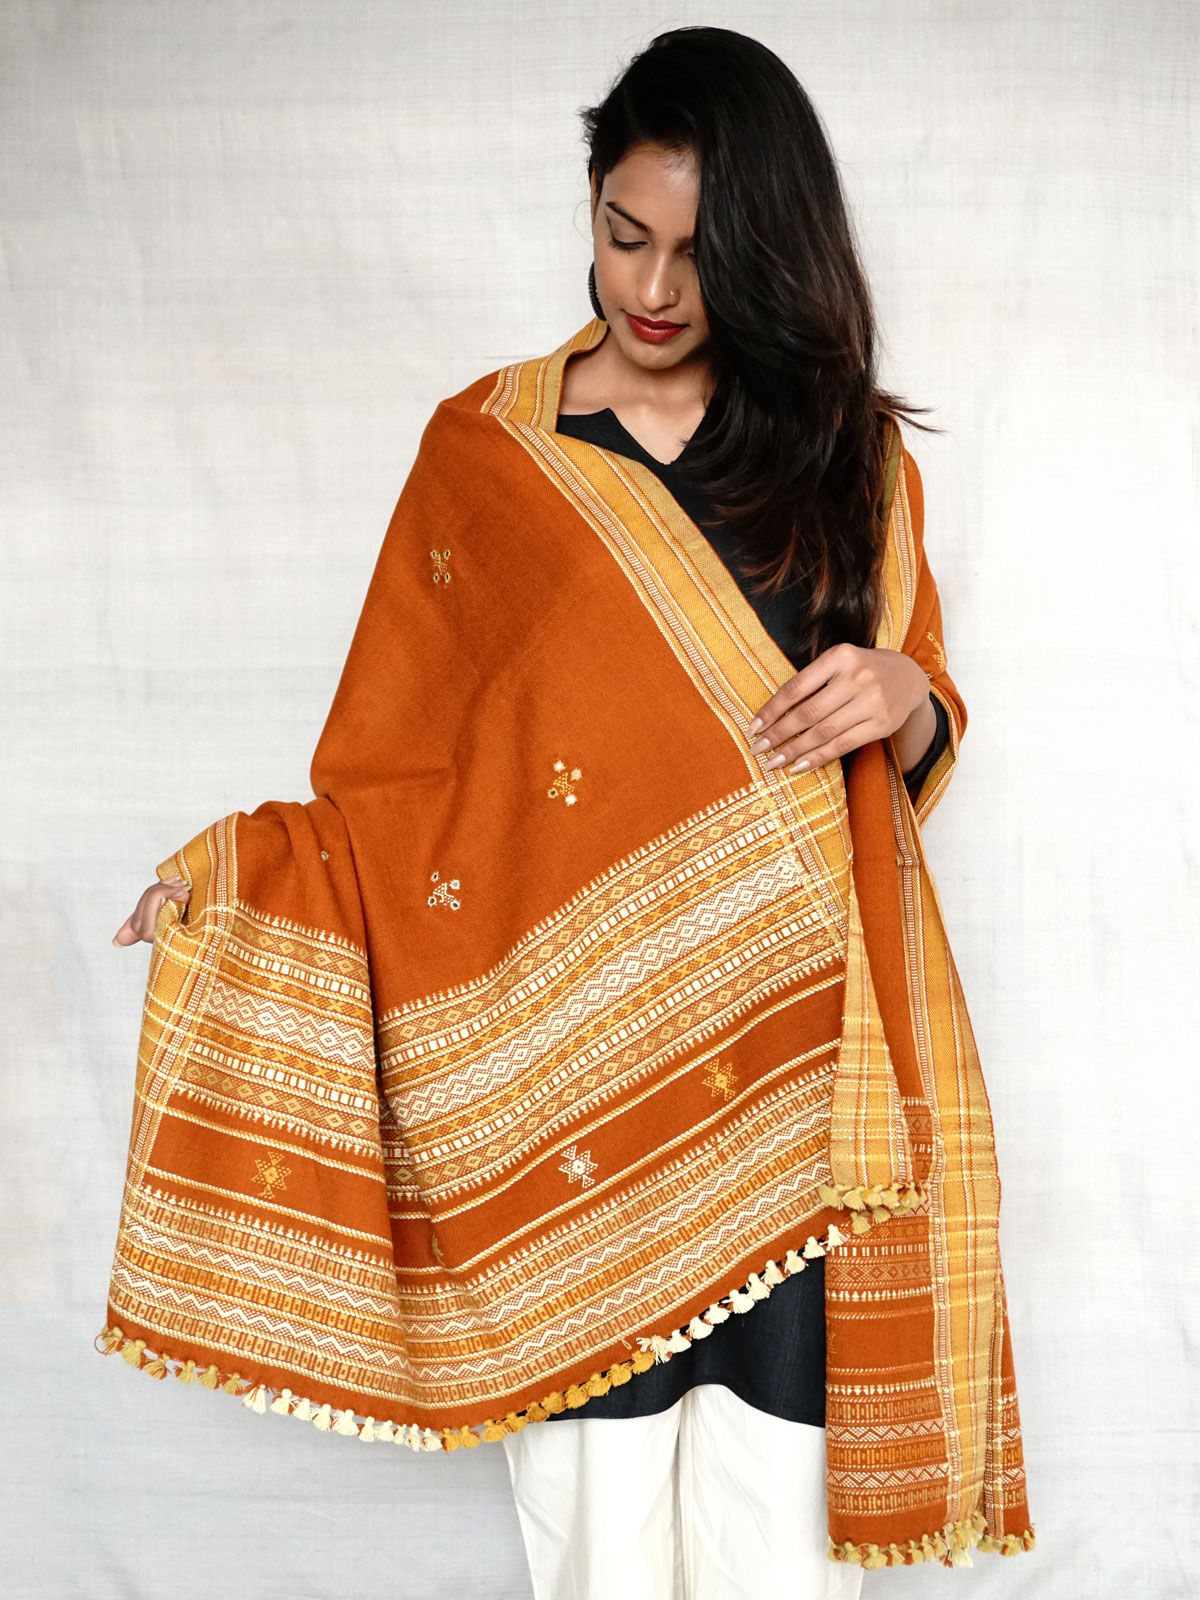 Rust and beige embroided shawl